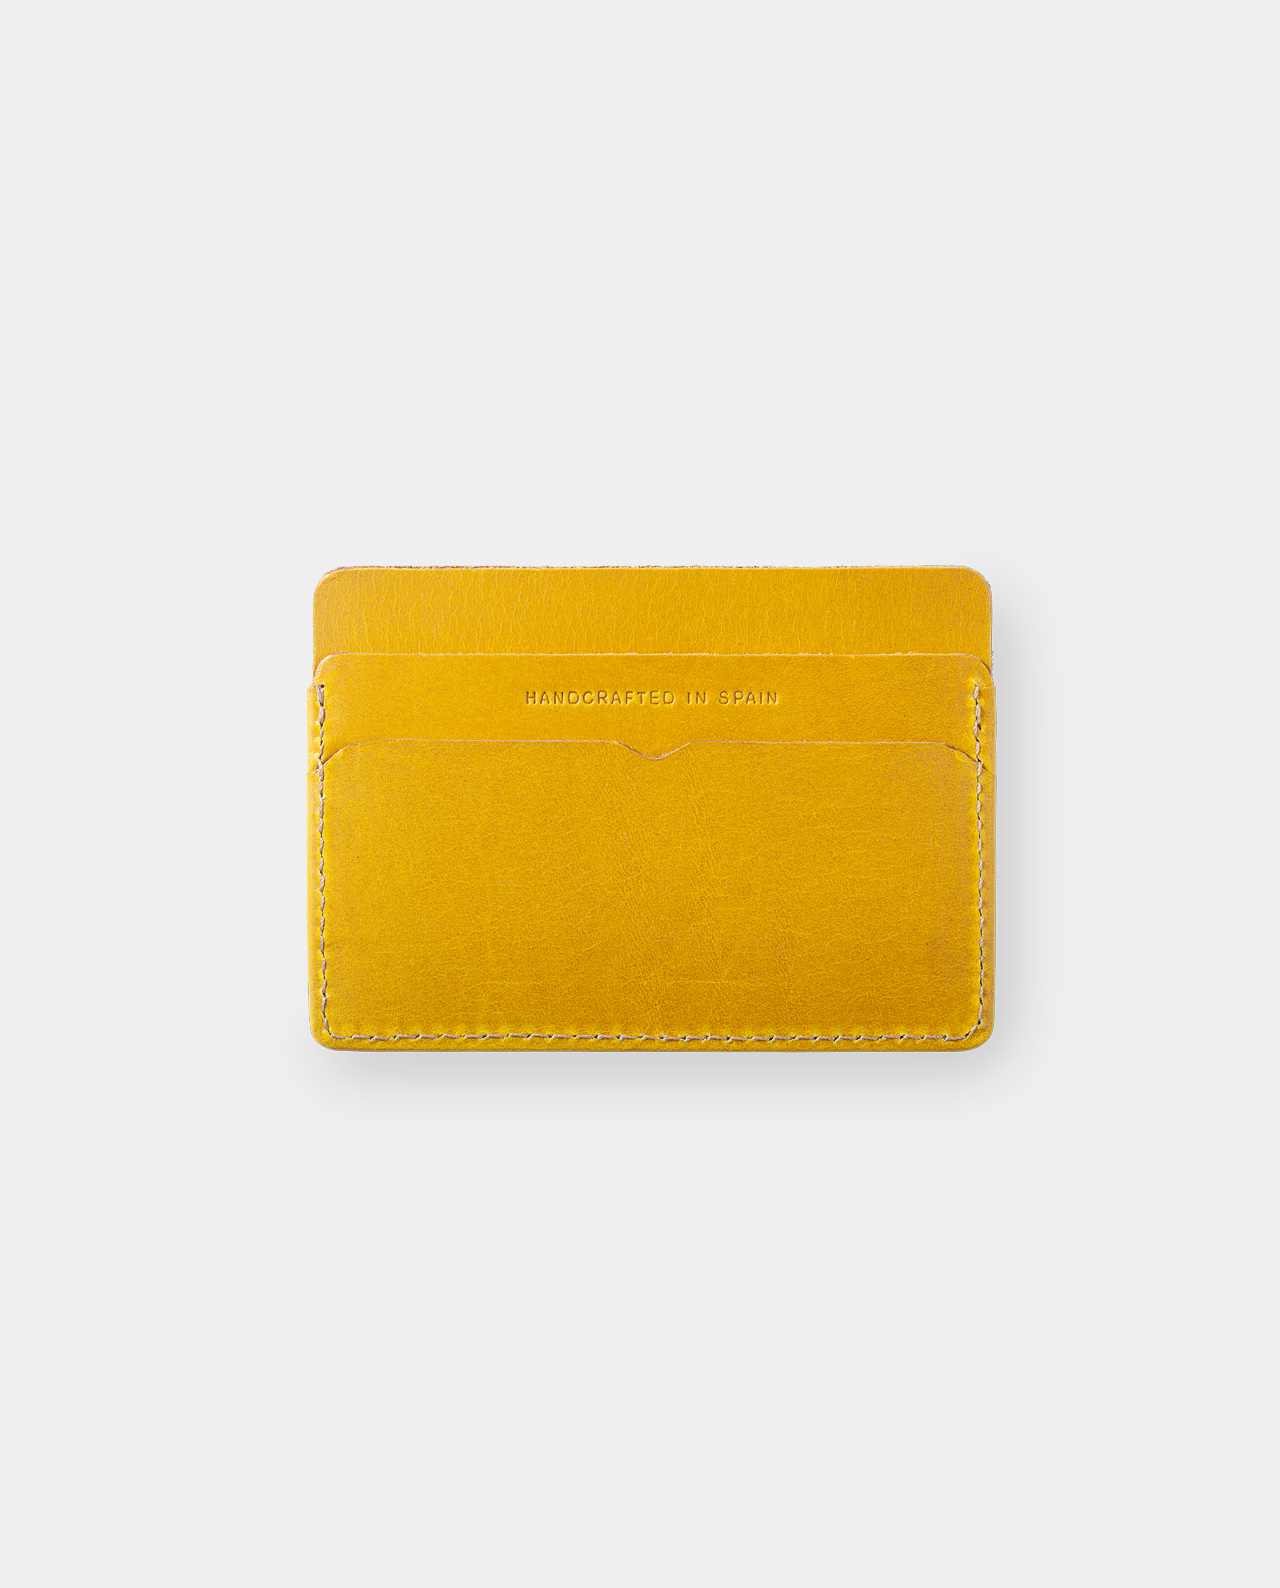 card holder yellow for cards and bills